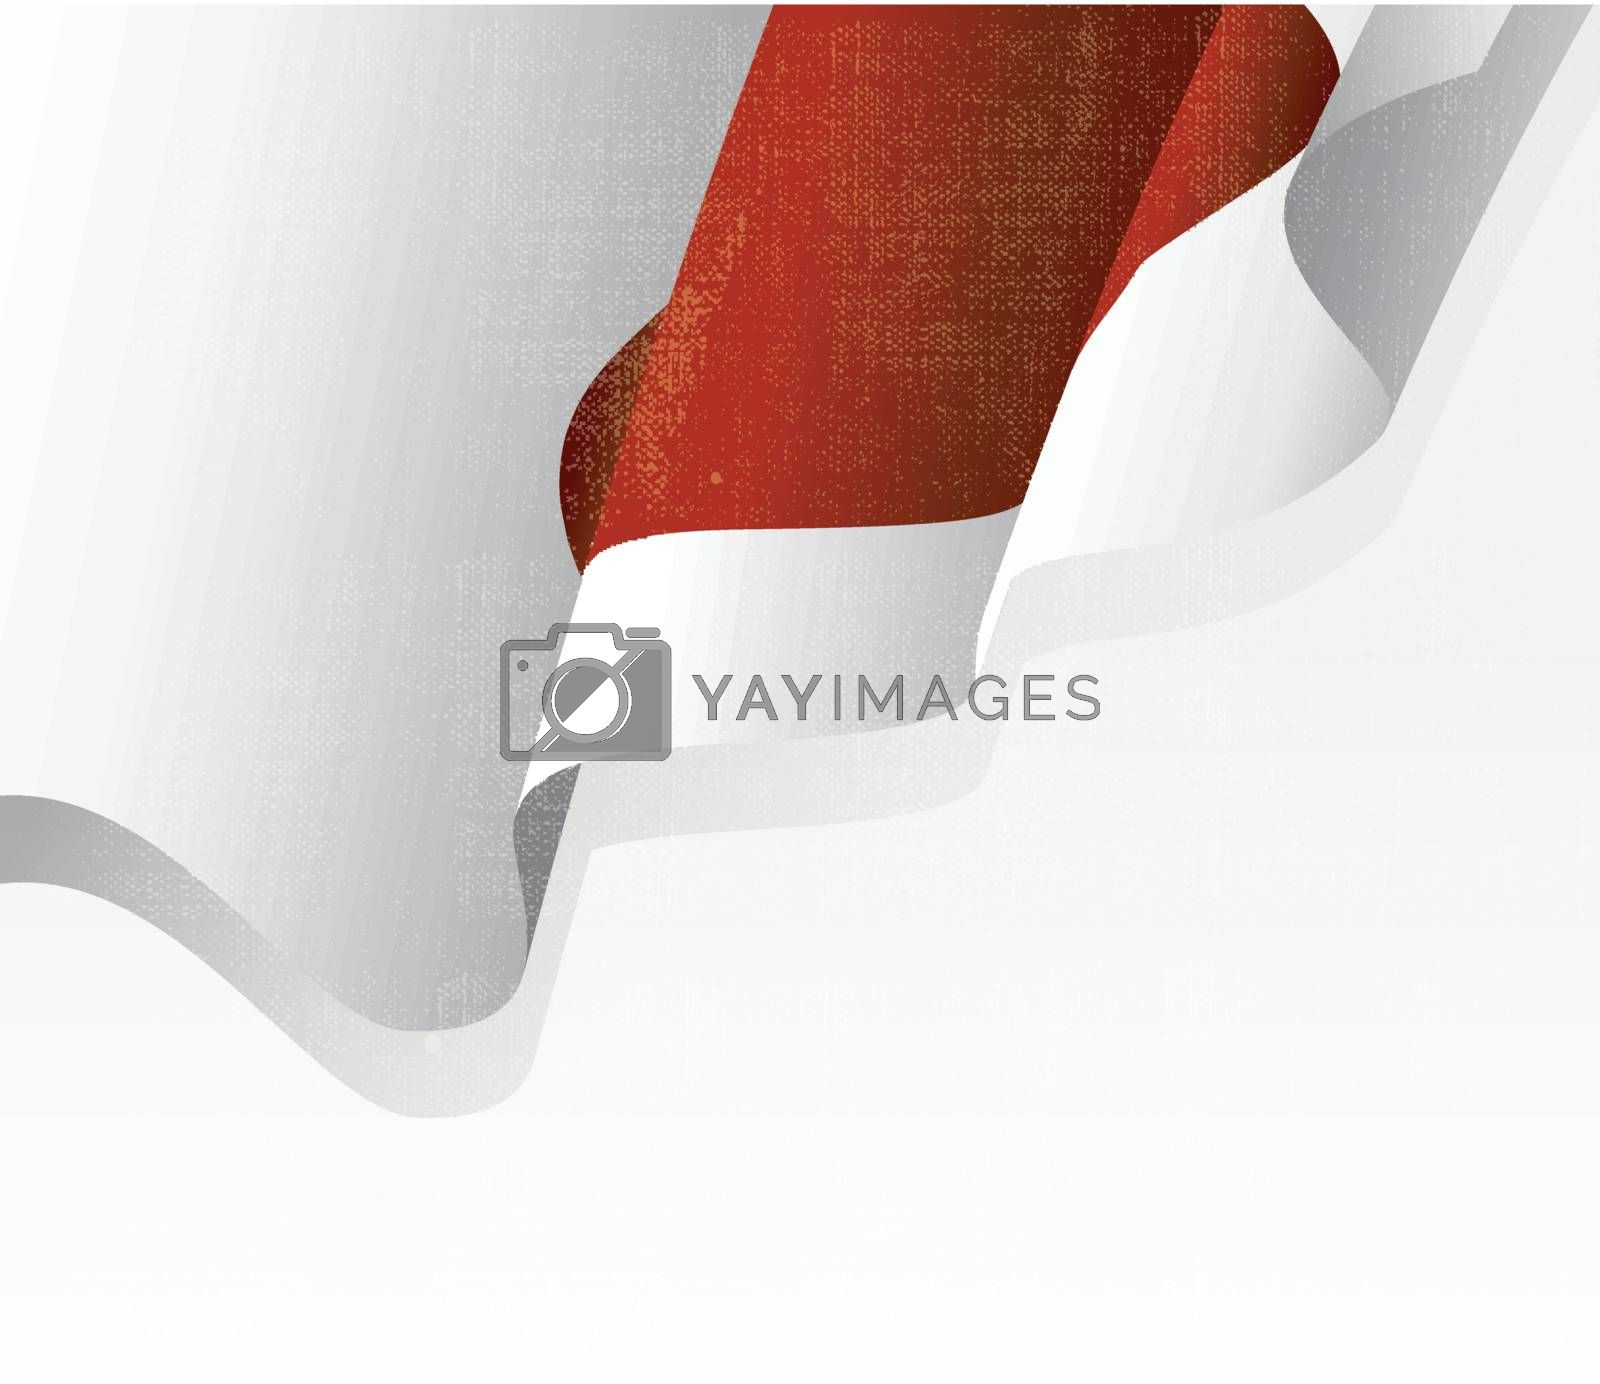 Japan flag with copy space and grunge effect